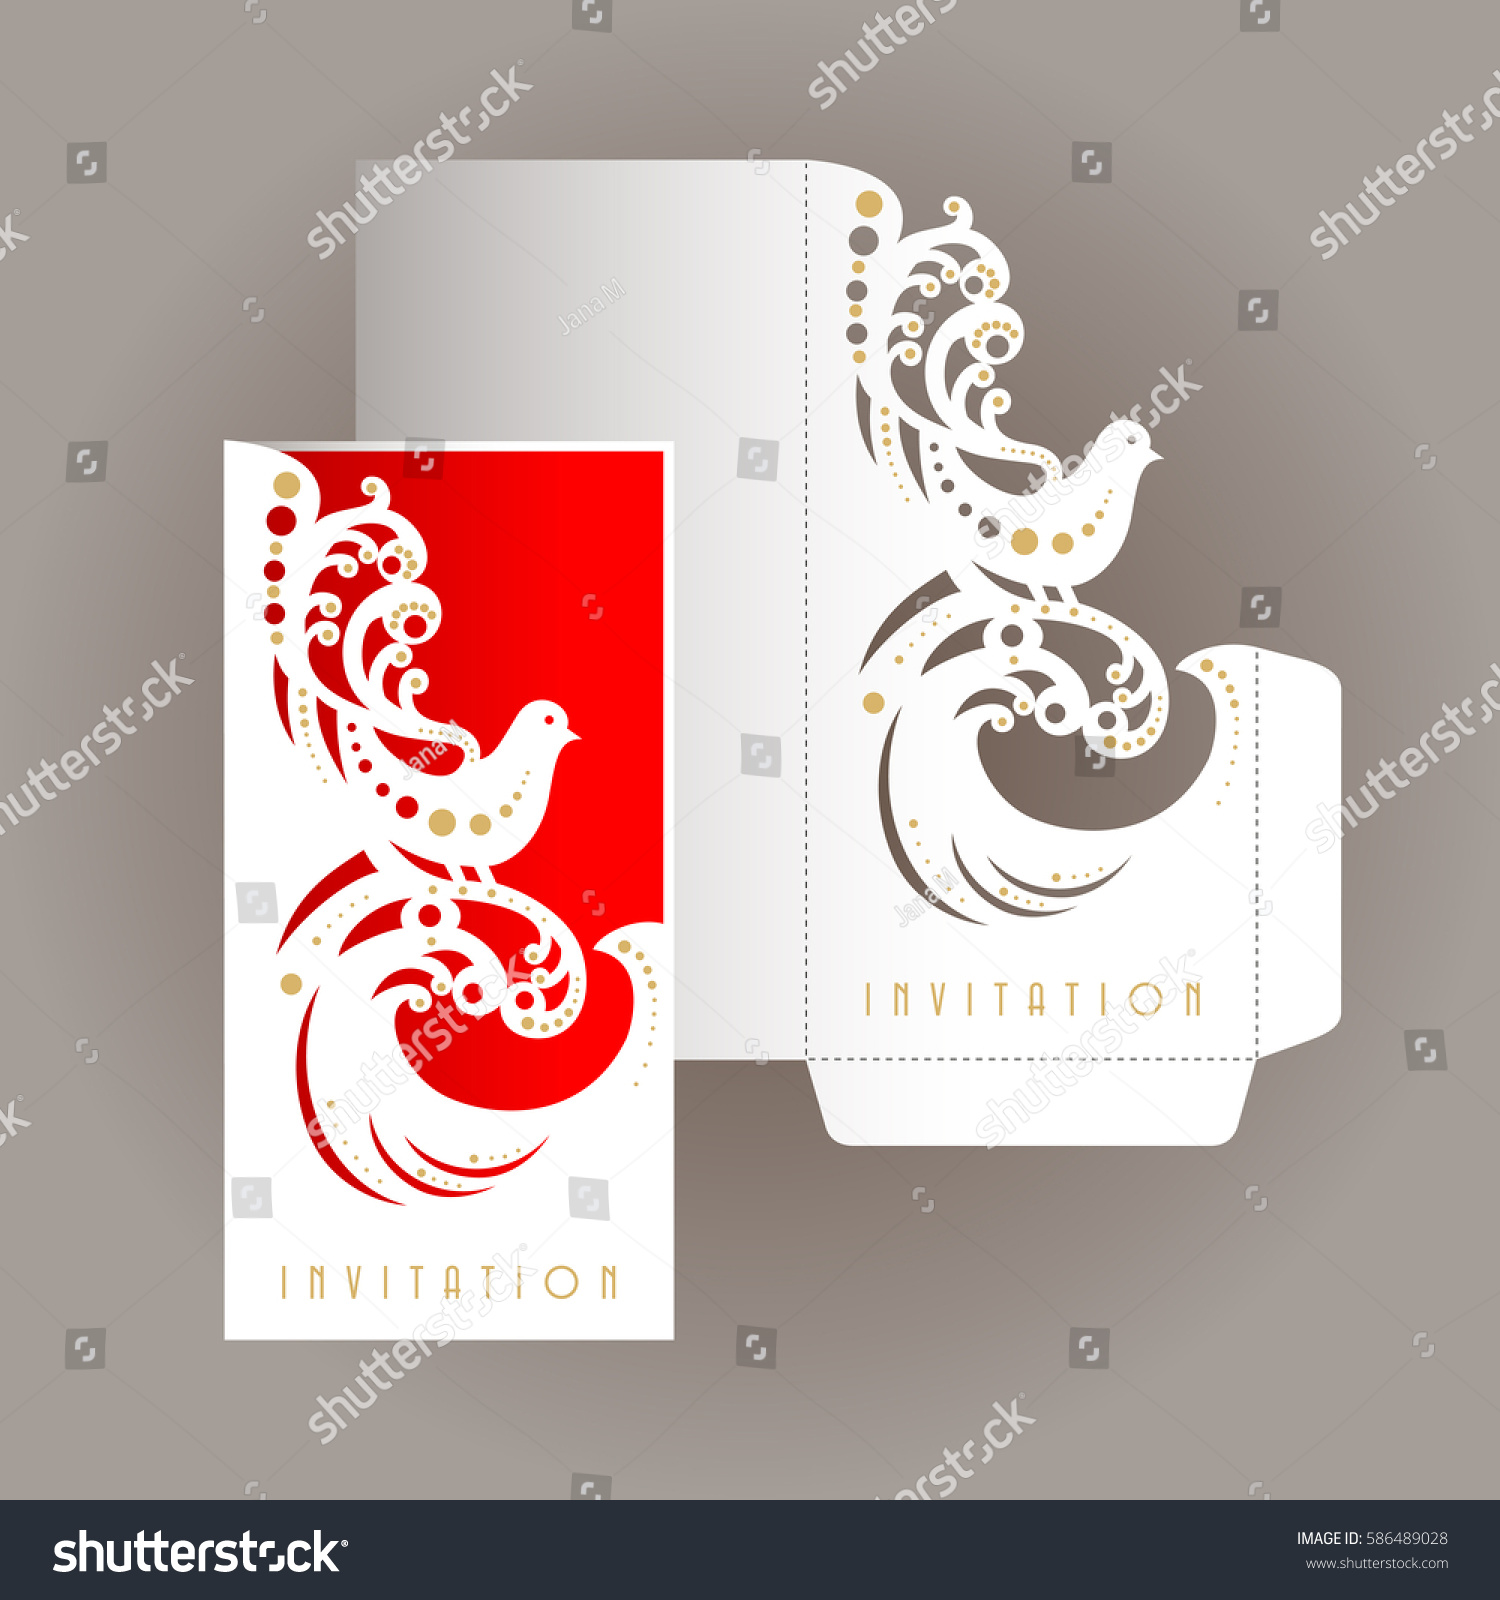 Laser Cut Template Cover Wedding Design Stock Vector (Royalty Free ...